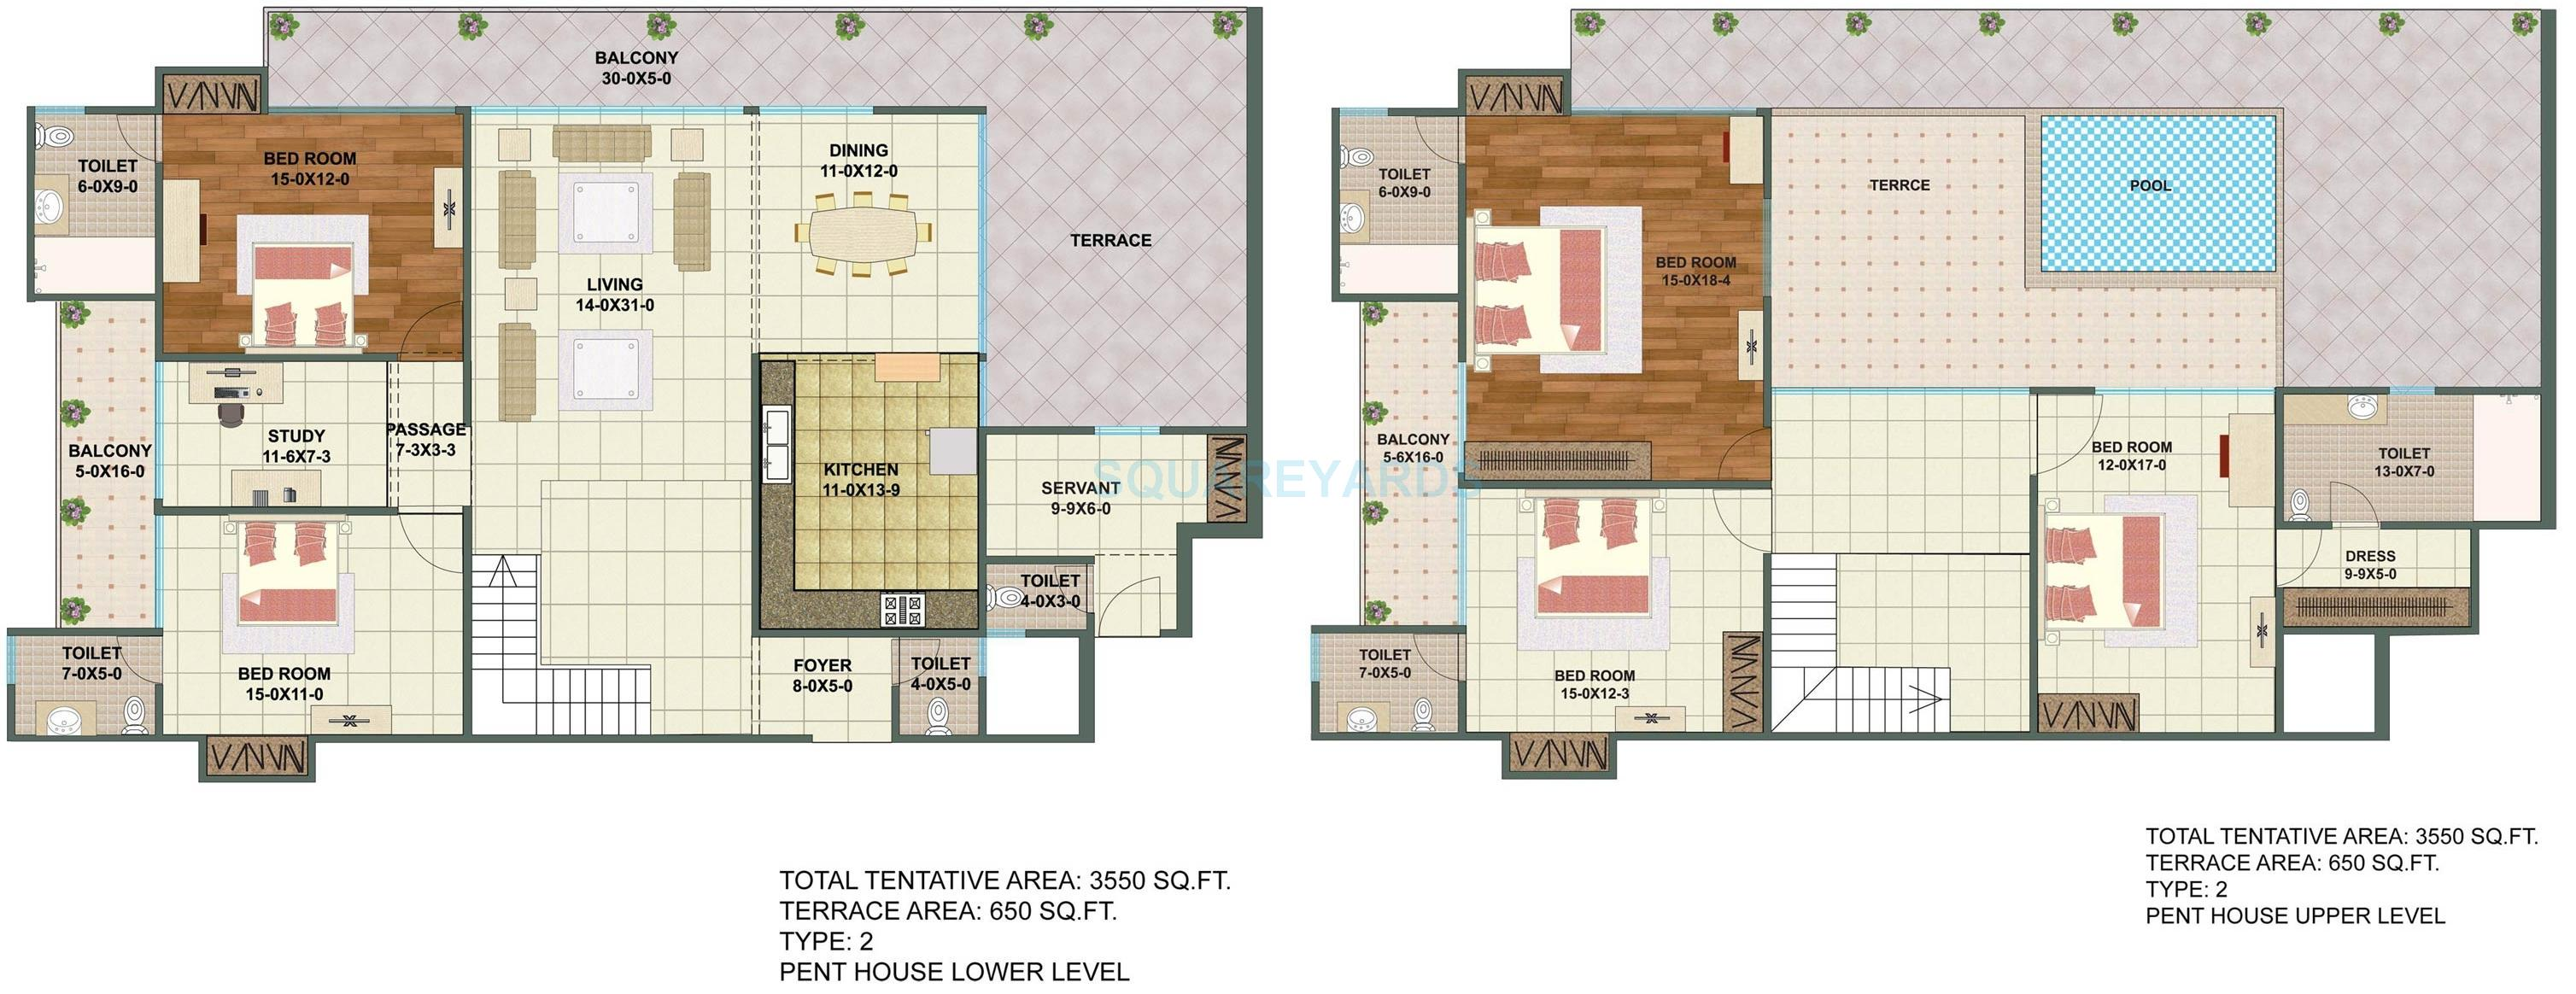 sunshine helios in sector 78 noida project overview unit plans 5 bhk 3550 sq ft penthouse floor plan